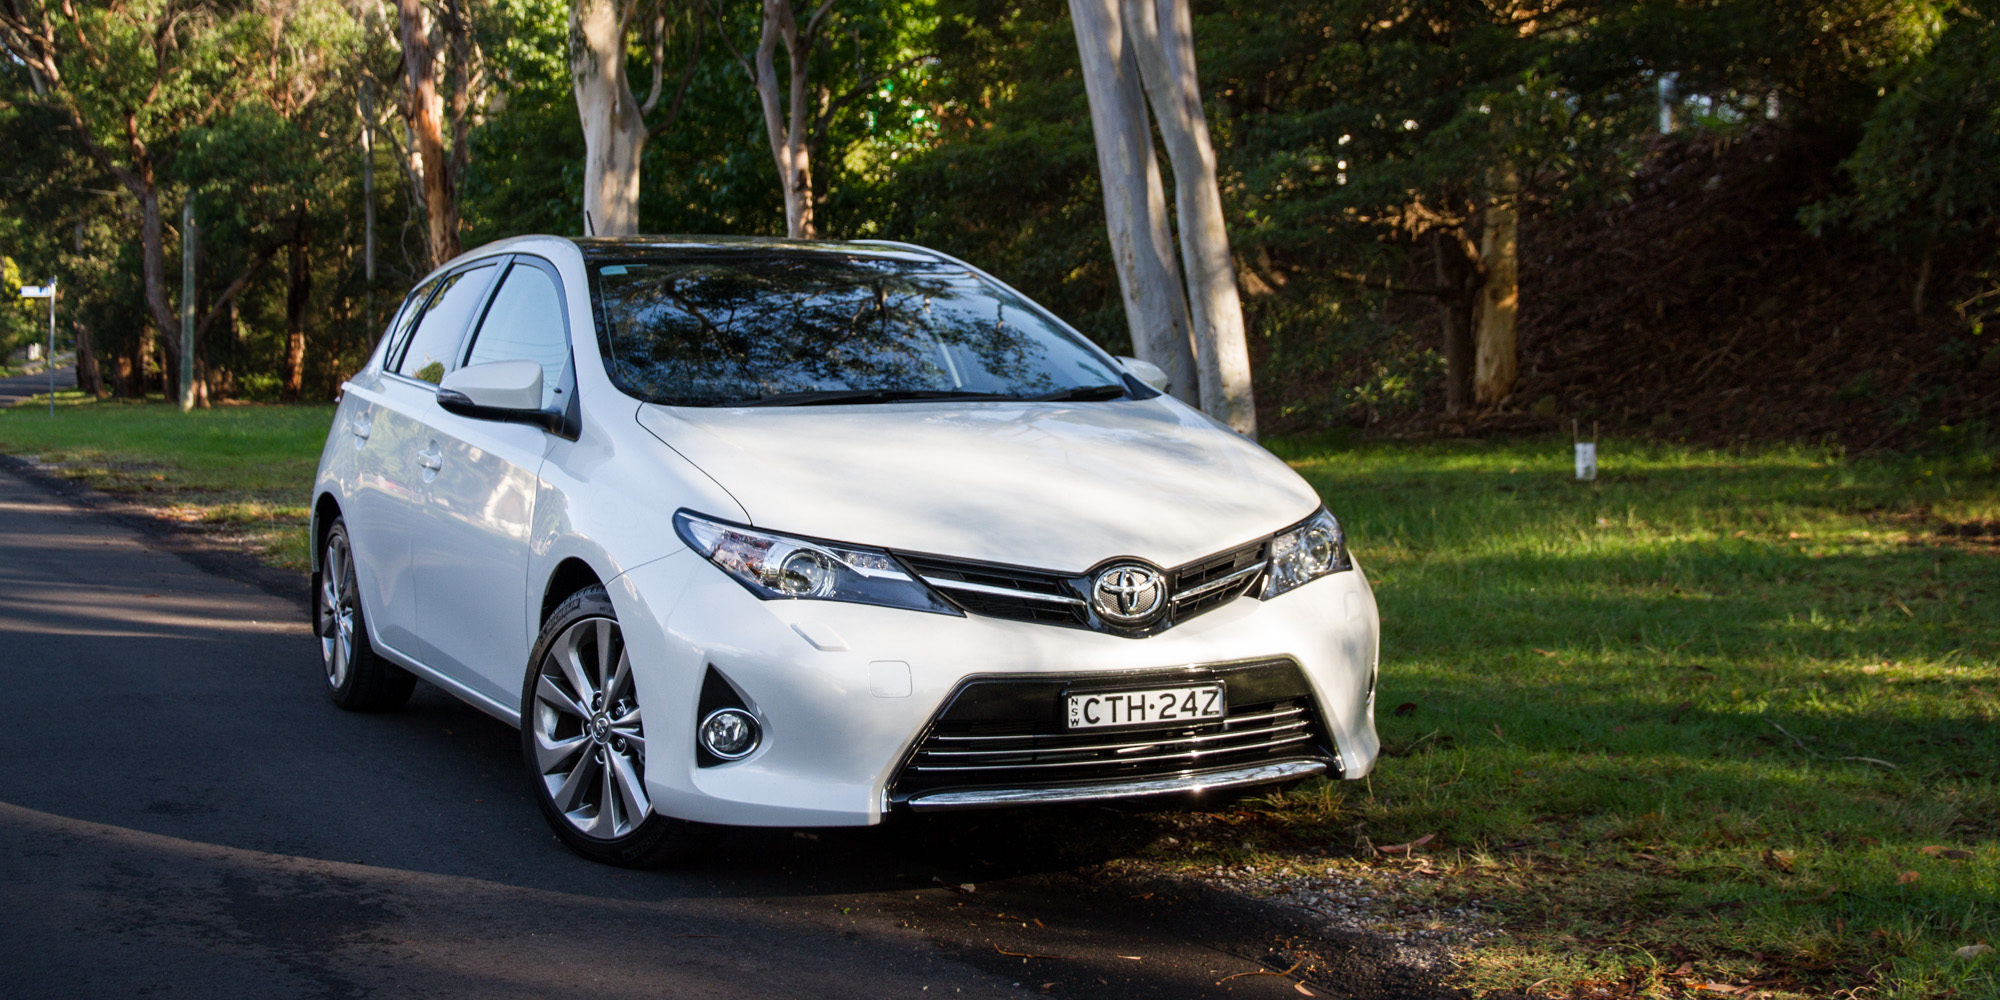 2015 Toyota Corolla Levin ZR Review : Long-term report one ...